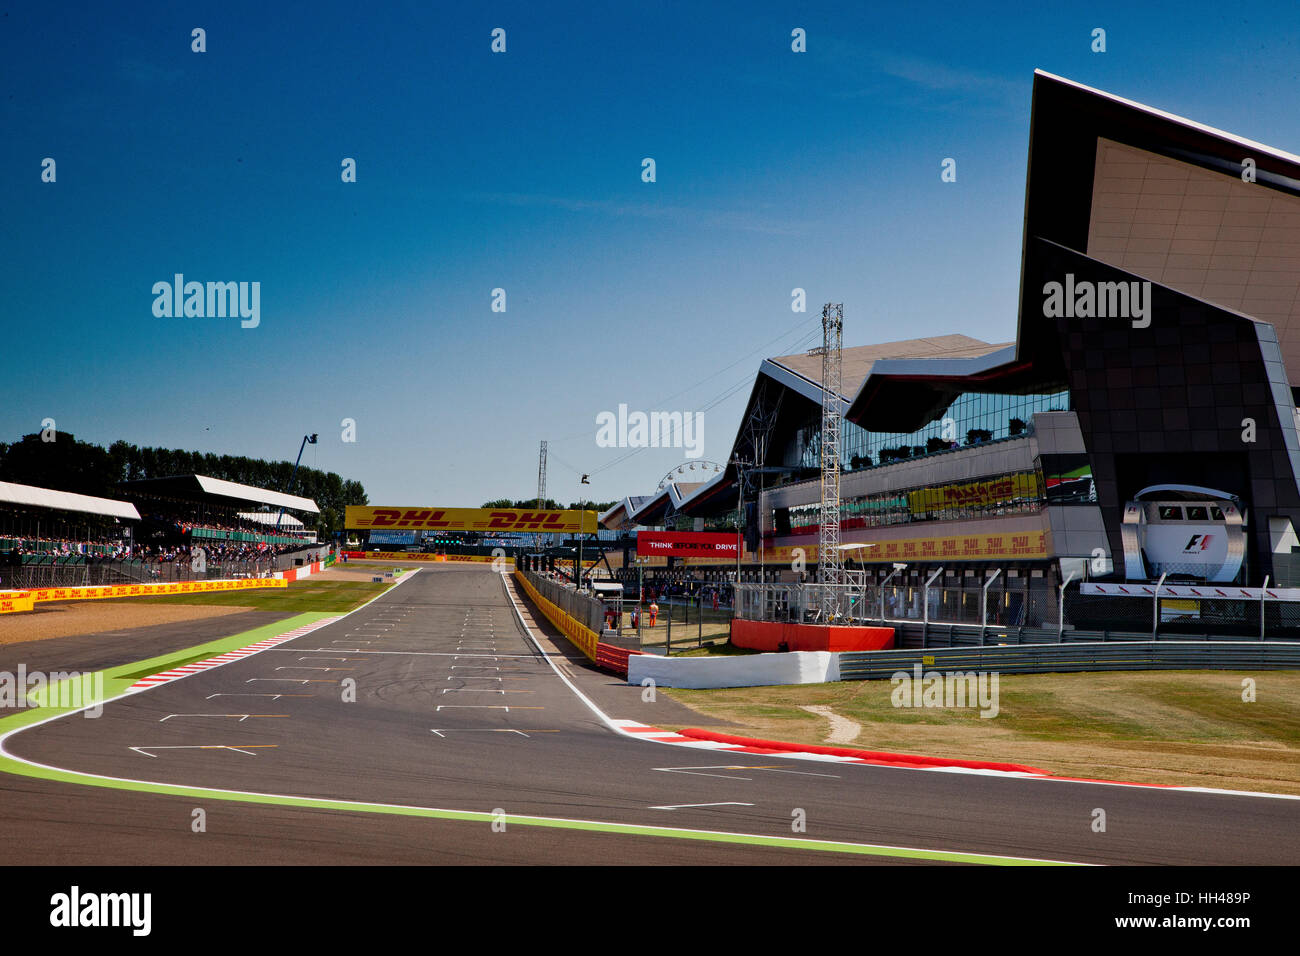 Silverstone motor racing circuit, Northants, UK Stock Photo